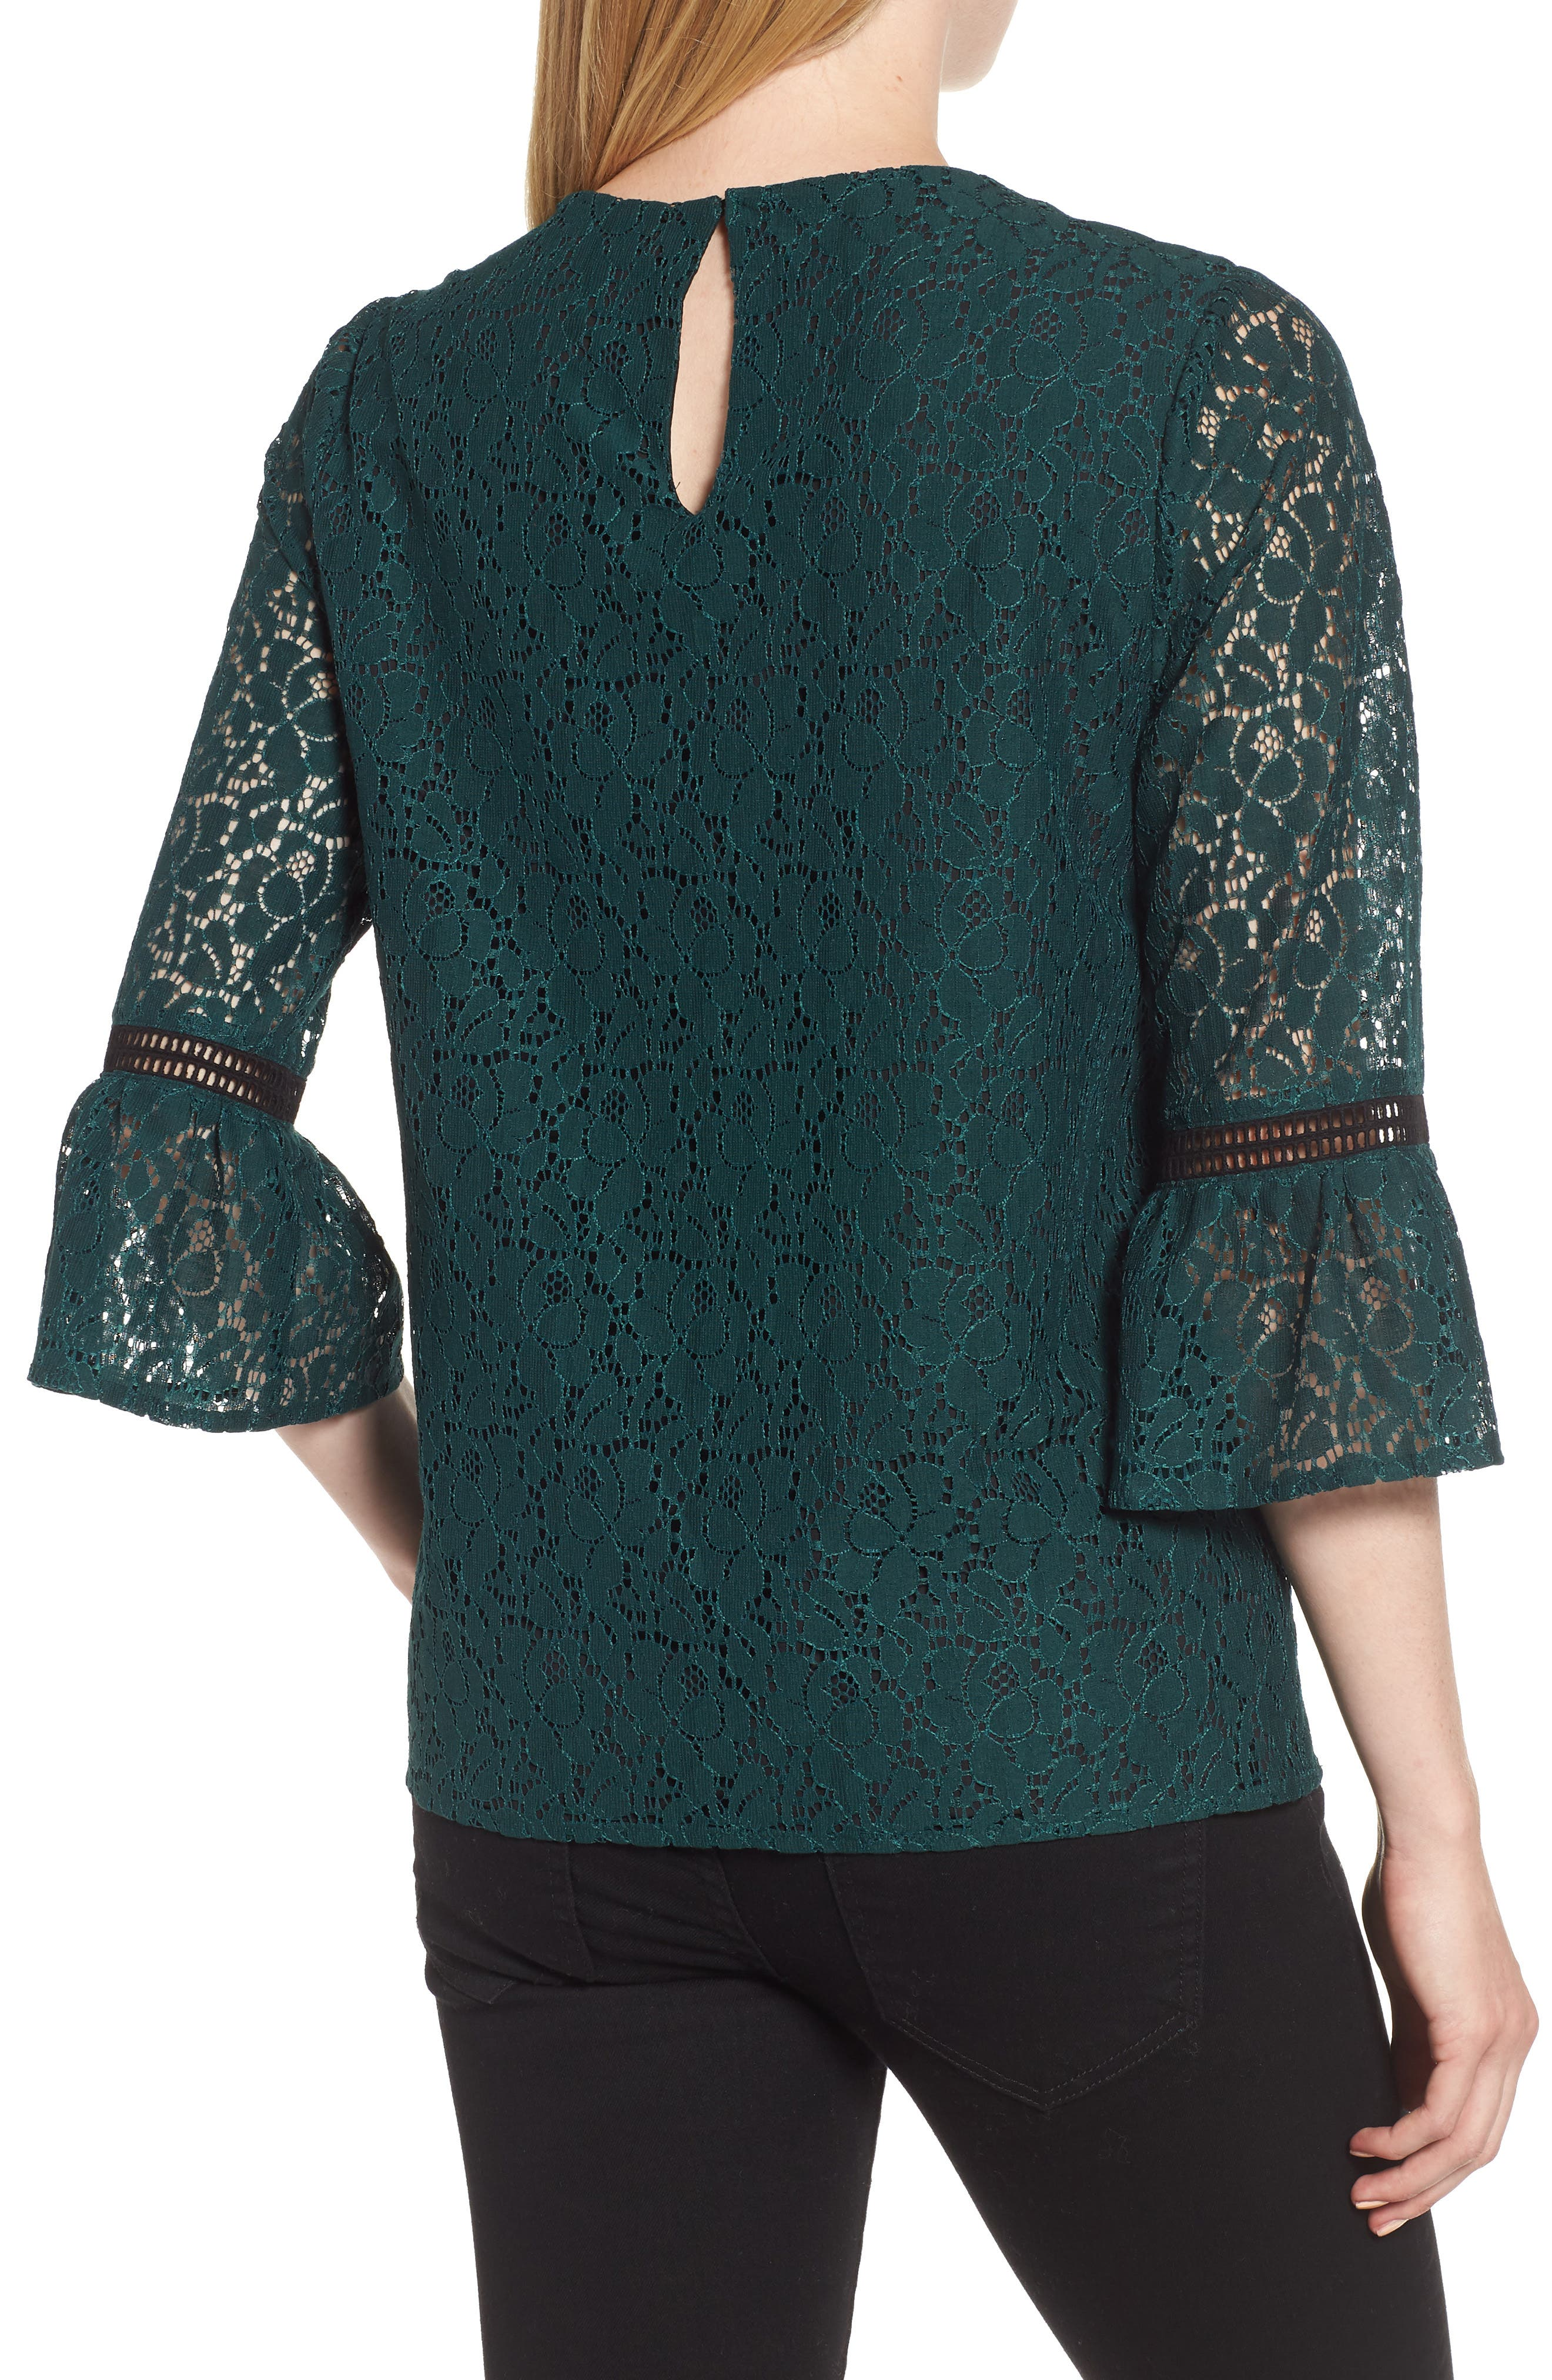 x Glam Squad Erin Allover Lace Bell Sleeve Top,                             Alternate thumbnail 3, color,                             GREEN